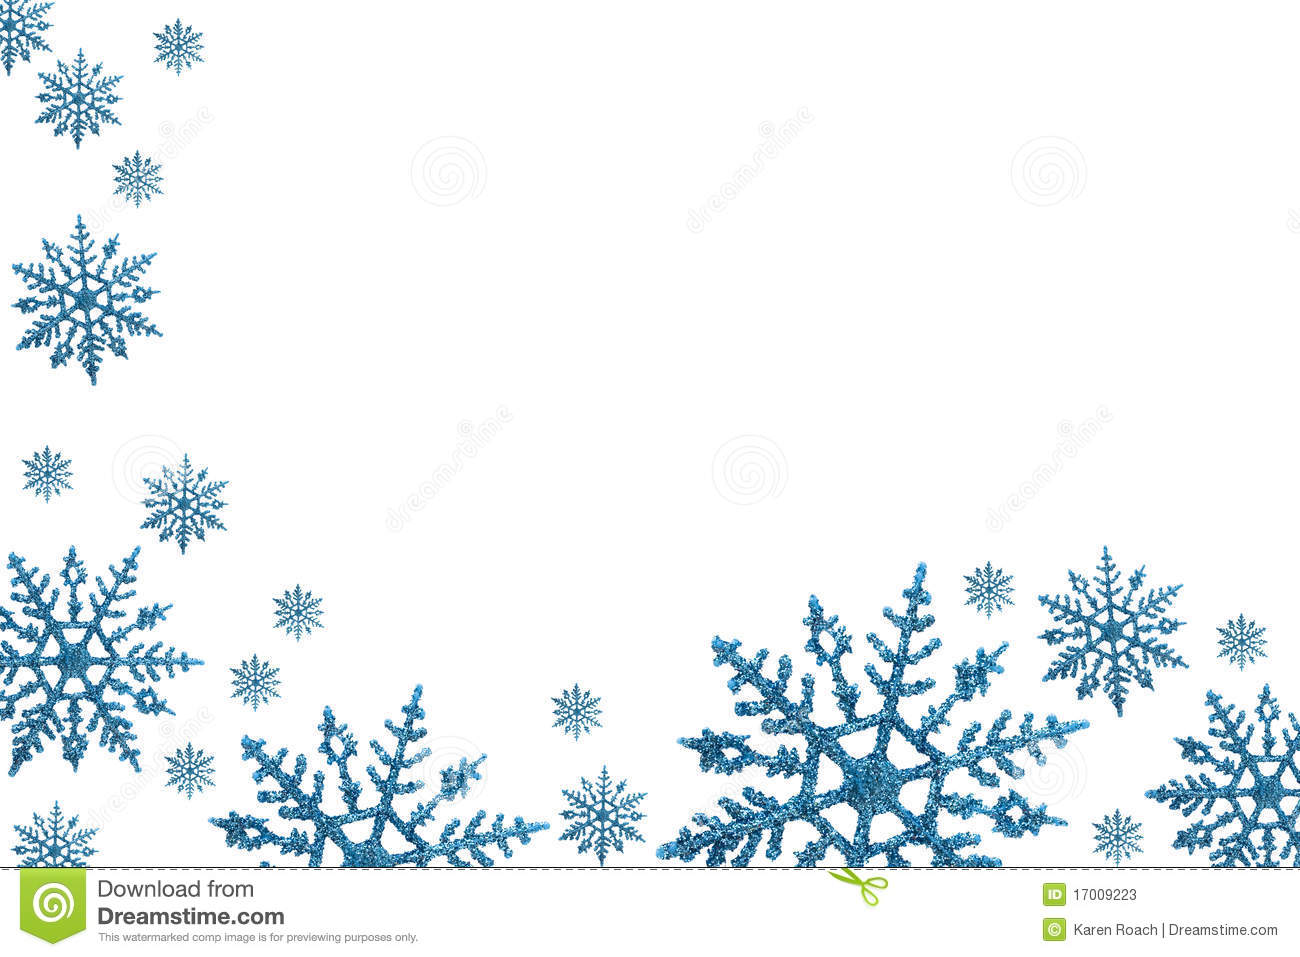 Winter Border Clipart Winter Border Clip-Winter Border Clipart Winter Border Clipart Winter Border Clipart-0